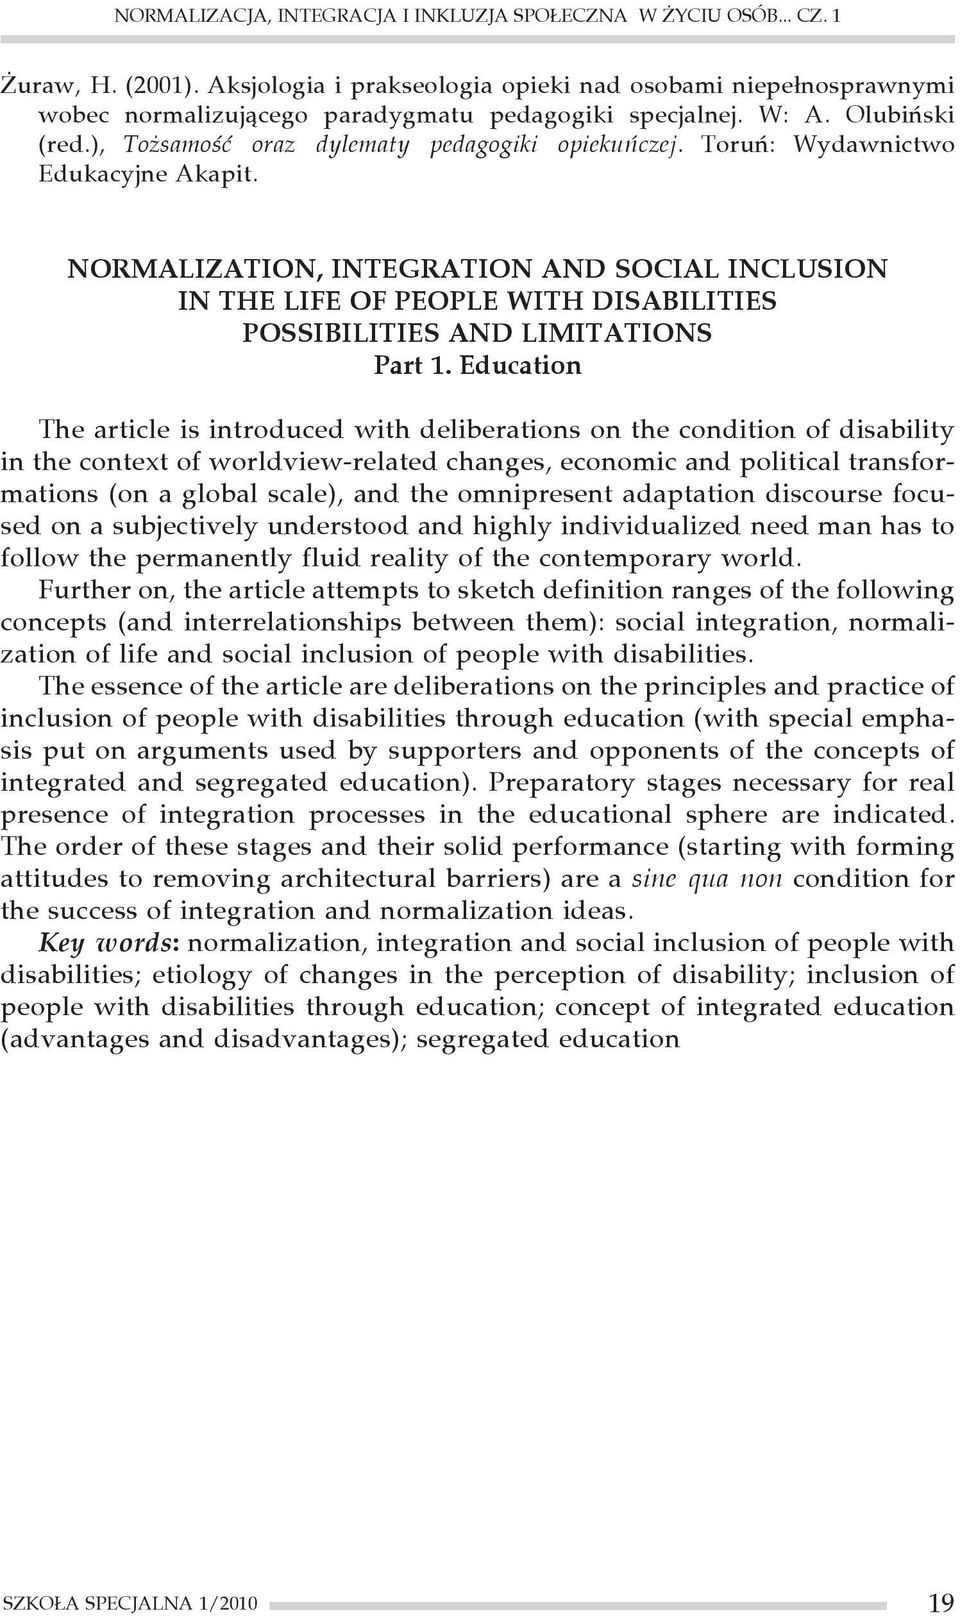 Toruń: Wydawnictwo Edukacyjne Akapit. NORMALIZATION, INTEGRATION AND SOCIAL INCLUSION IN THE LIFE OF PEOPLE WITH DISABILITIES POSSIBILITIES AND LIMITATIONS Part 1.